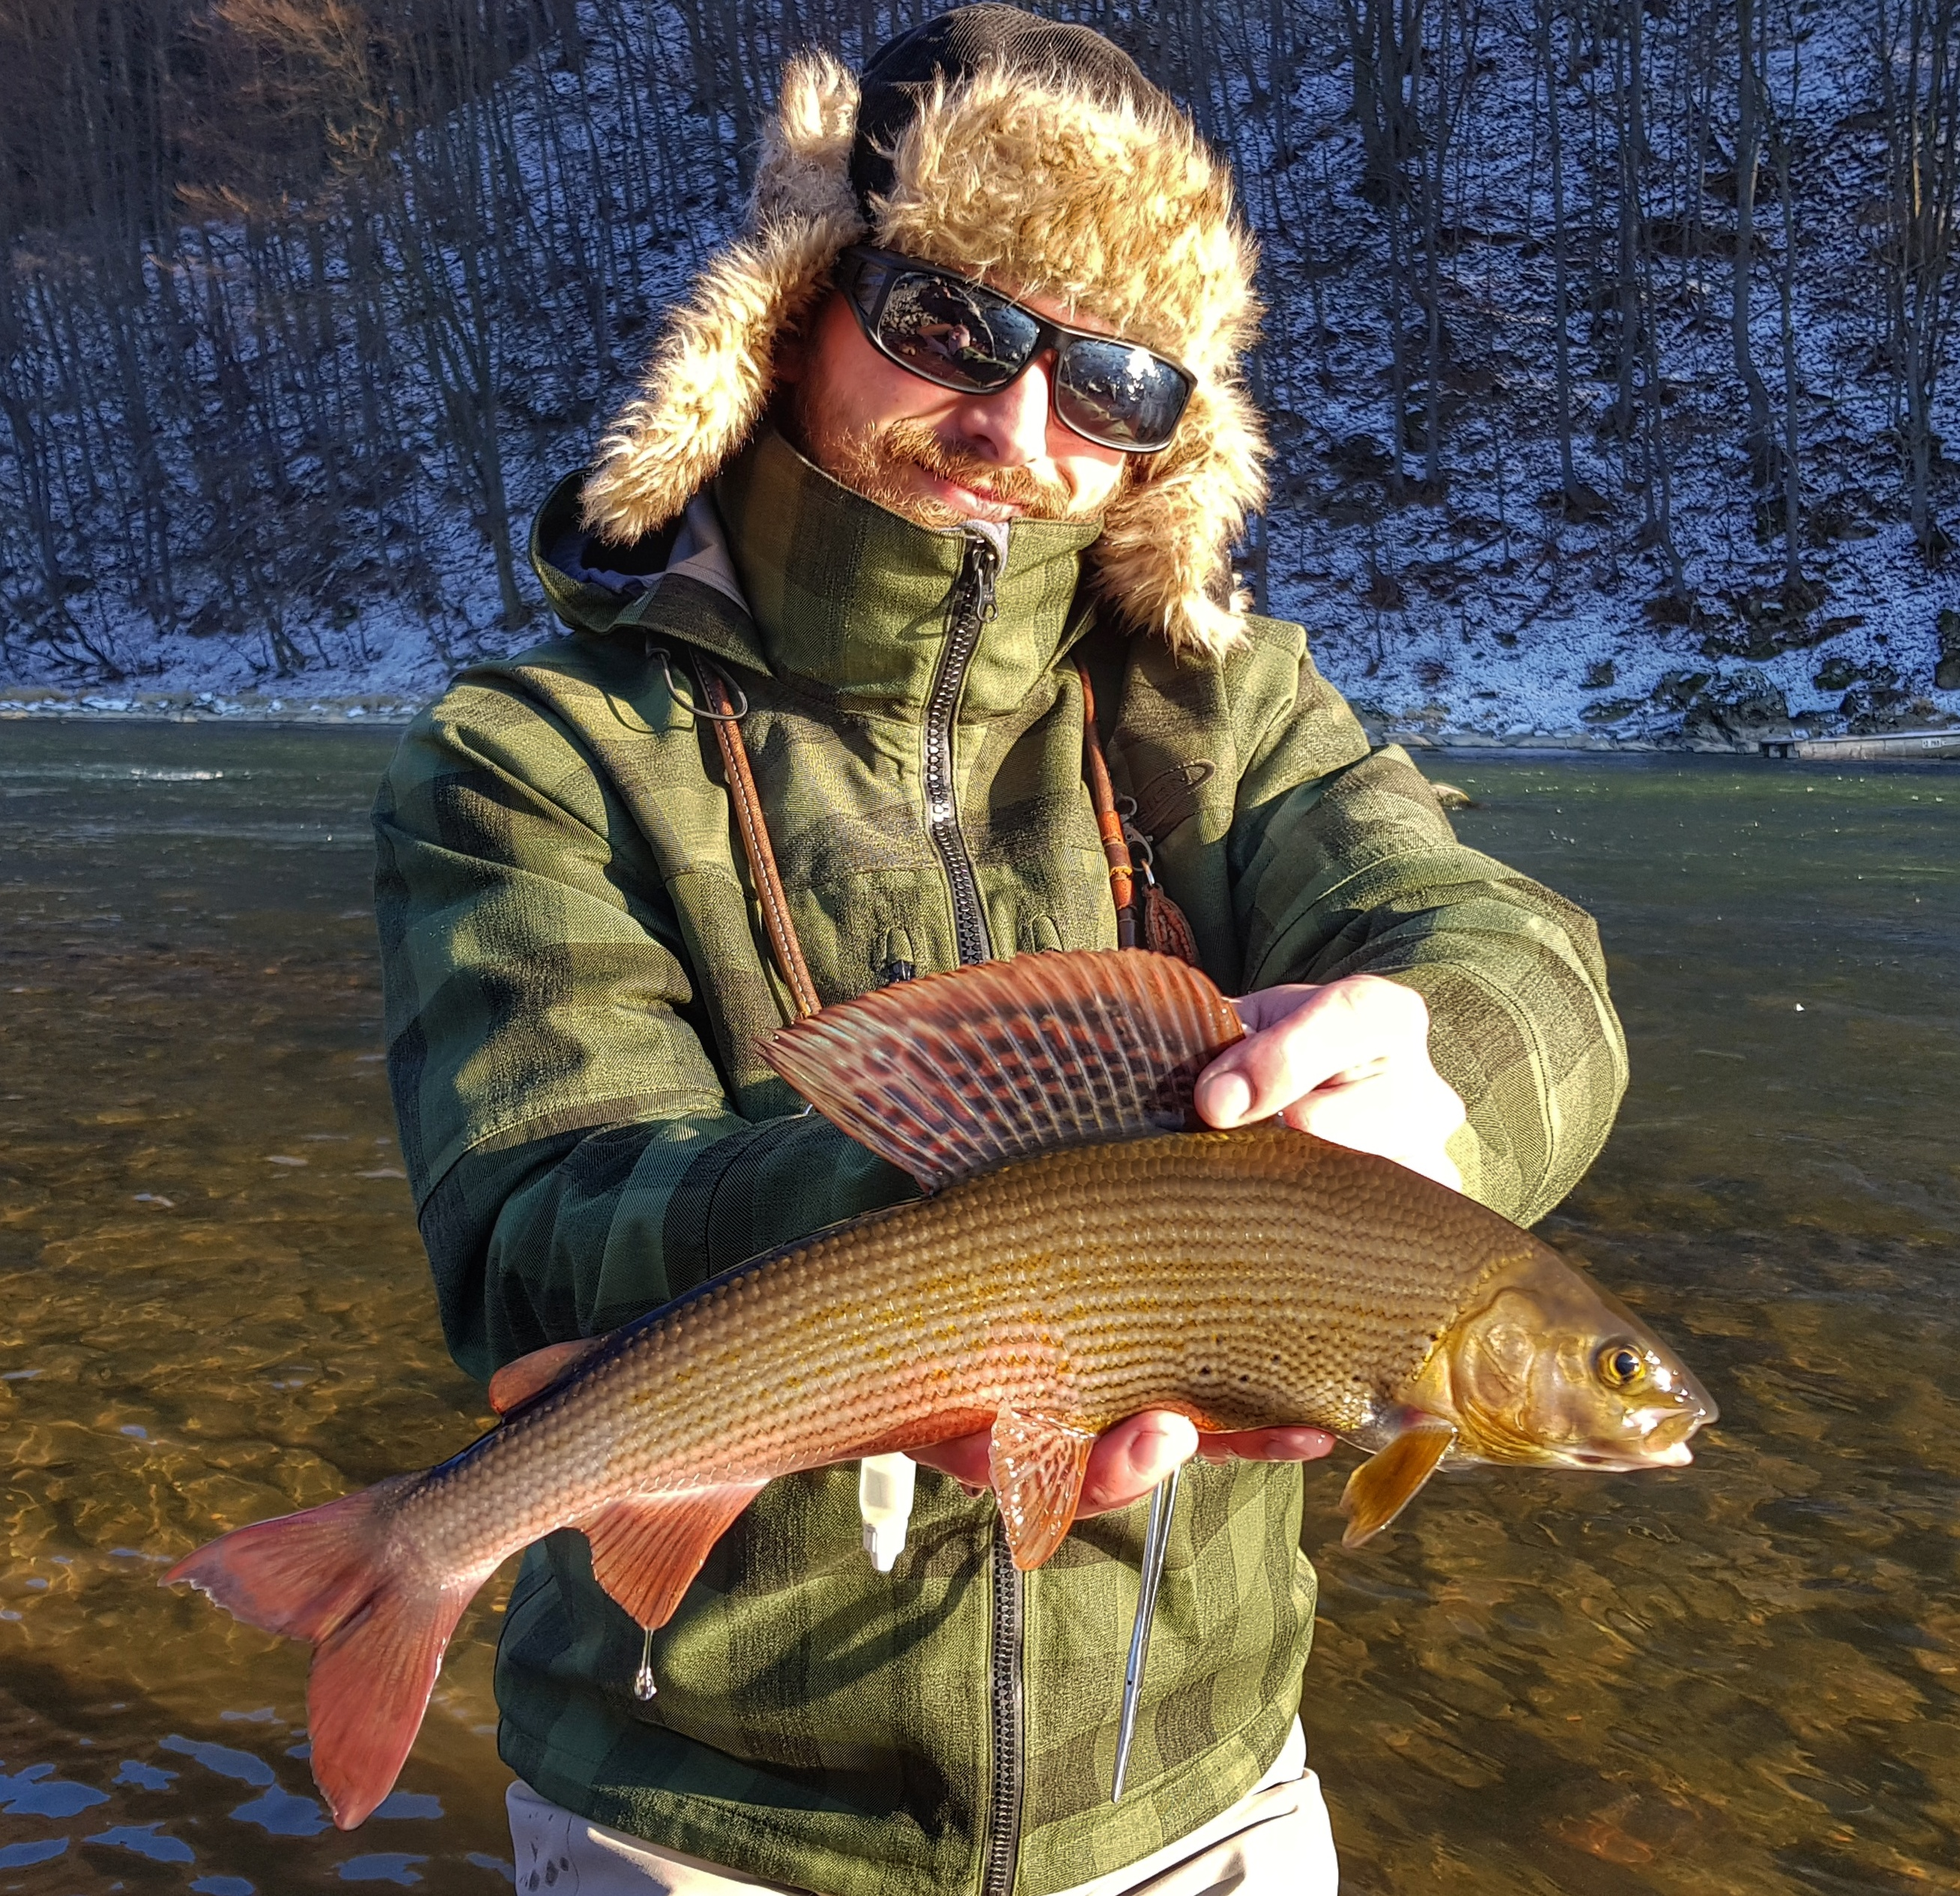 One more grayling from Dunajec River - fly fishing in Poland